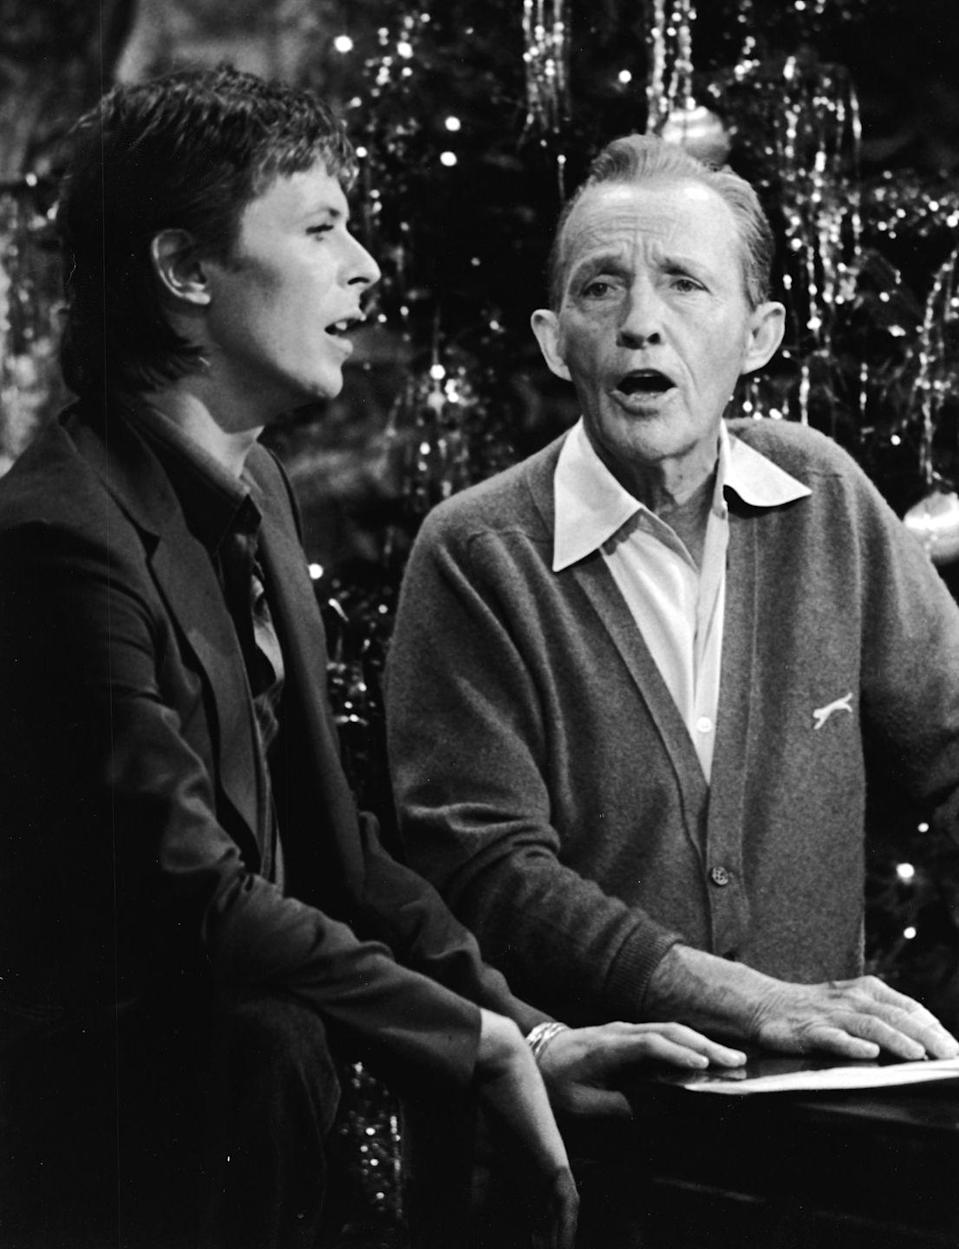 <p>Two generations of legends collided when David Bowie performed with Bing Crosby for <em>Bing Crosby's Merrie Olde Christmas</em> TV special. Bowie pared down from his typical Ziggy Stardust costumes, wearing a dark sport coat and button-down.  </p>